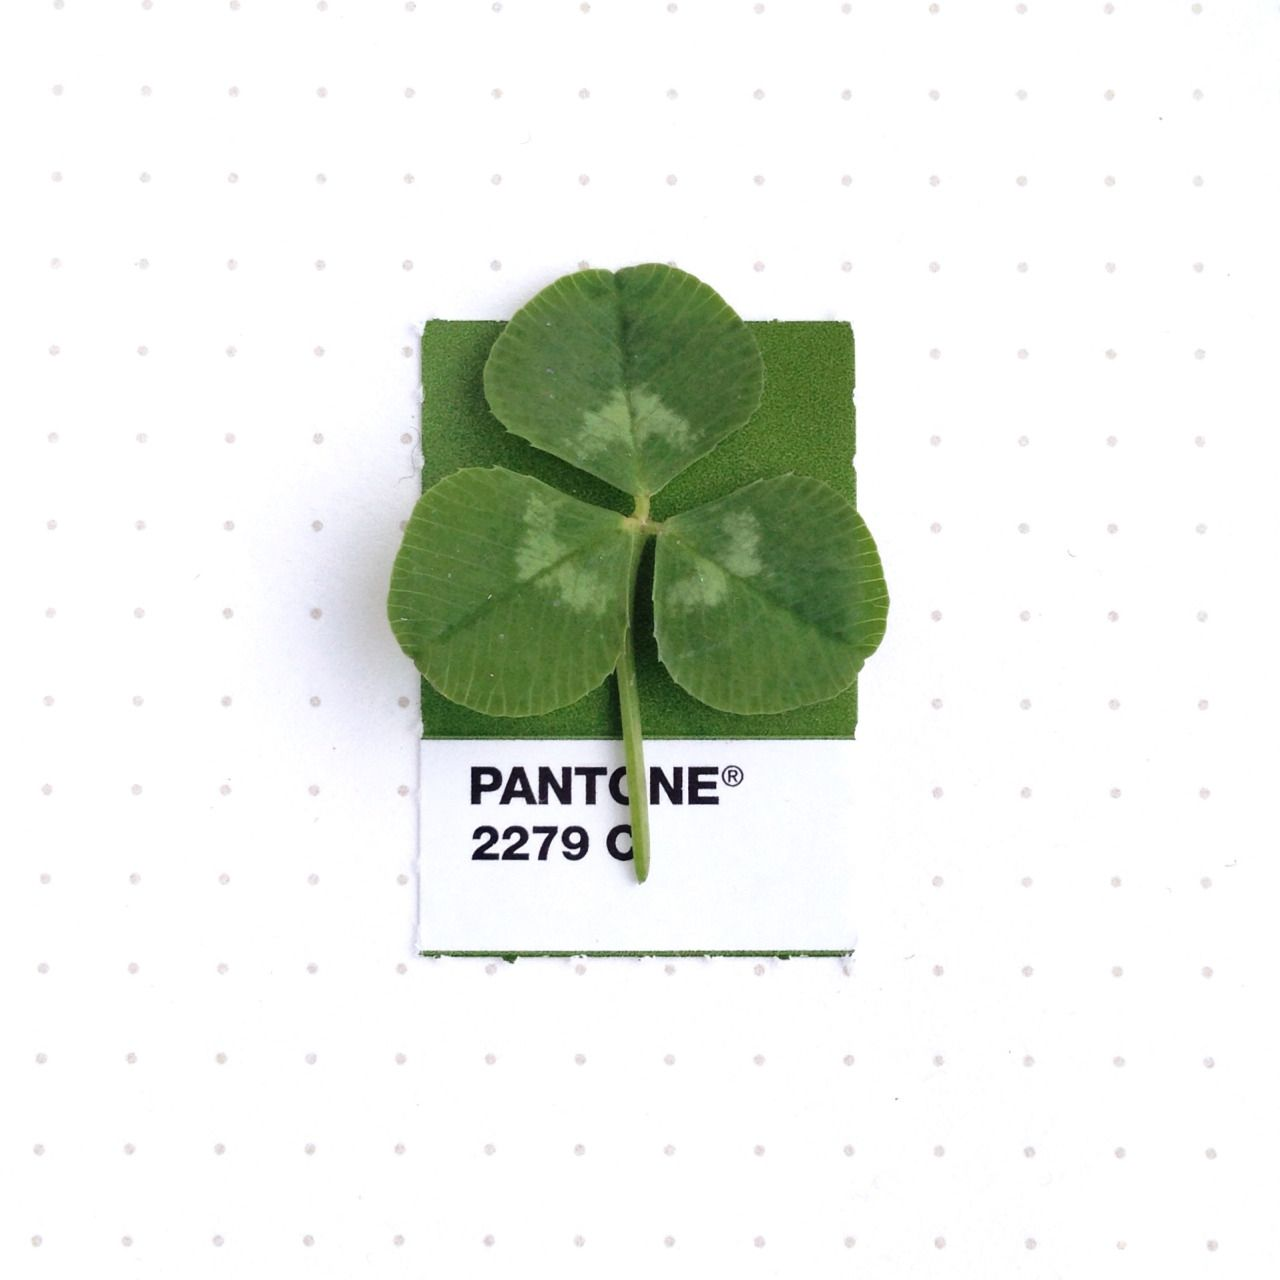 pantone 2279 color match a clover leaf they are growing rampantly right now - Clover Color